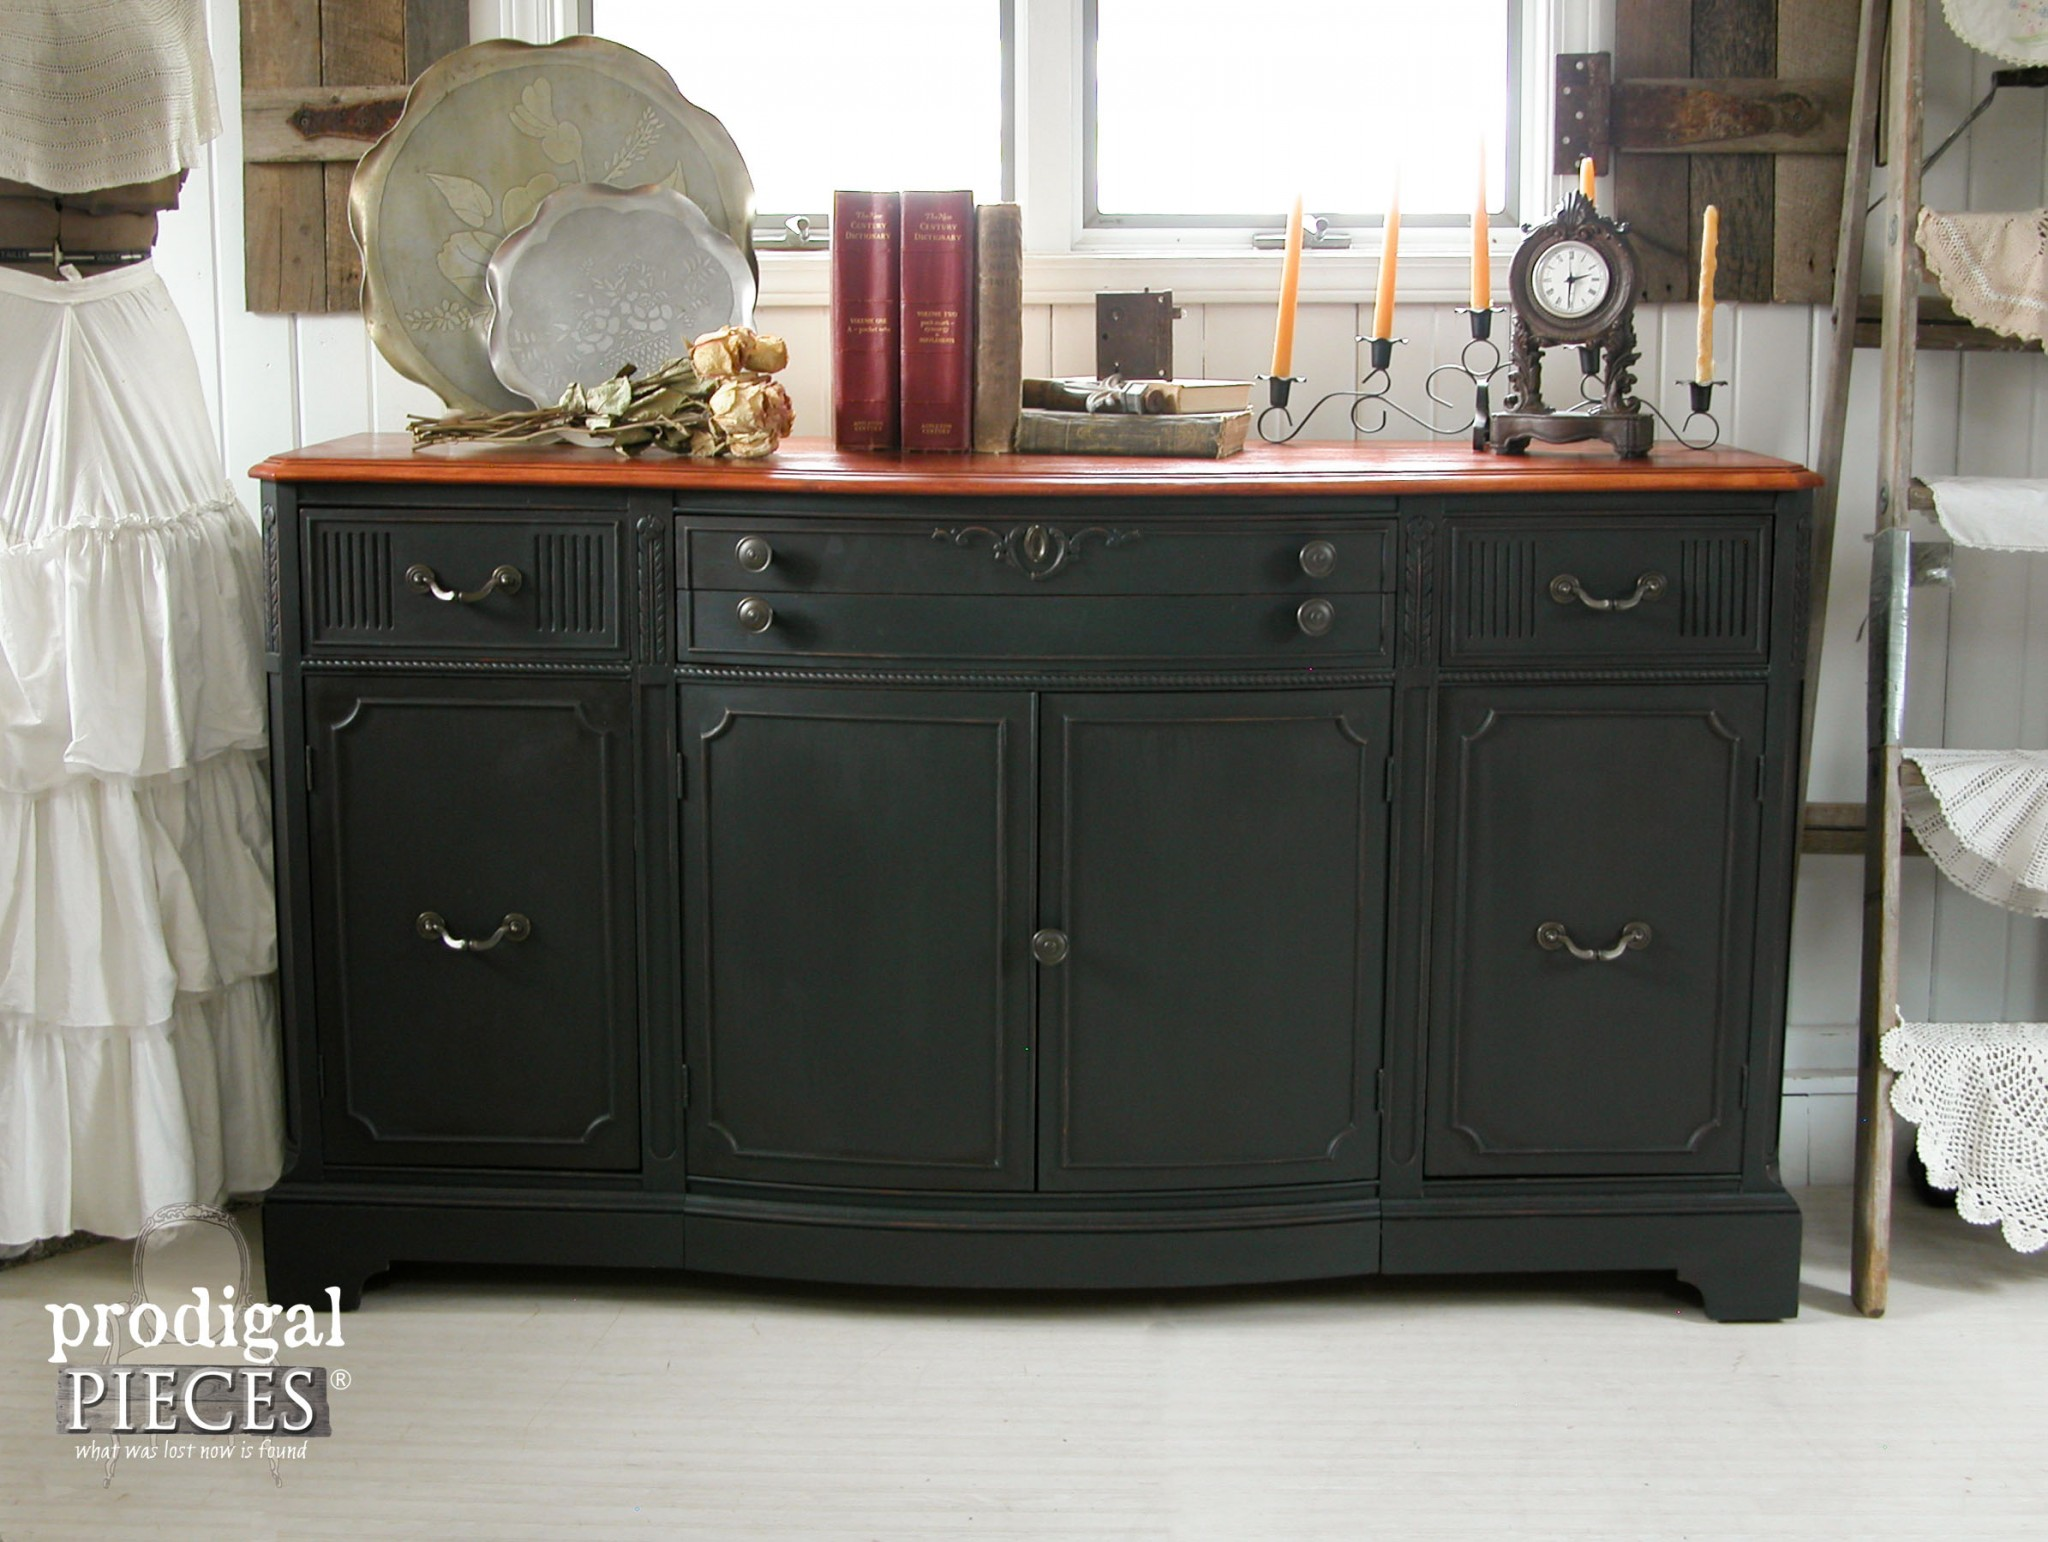 Vintage Buffet Gets Black Paint And Cherry Stain Makeover By Prodigal Pieces Www Prodigalpieces